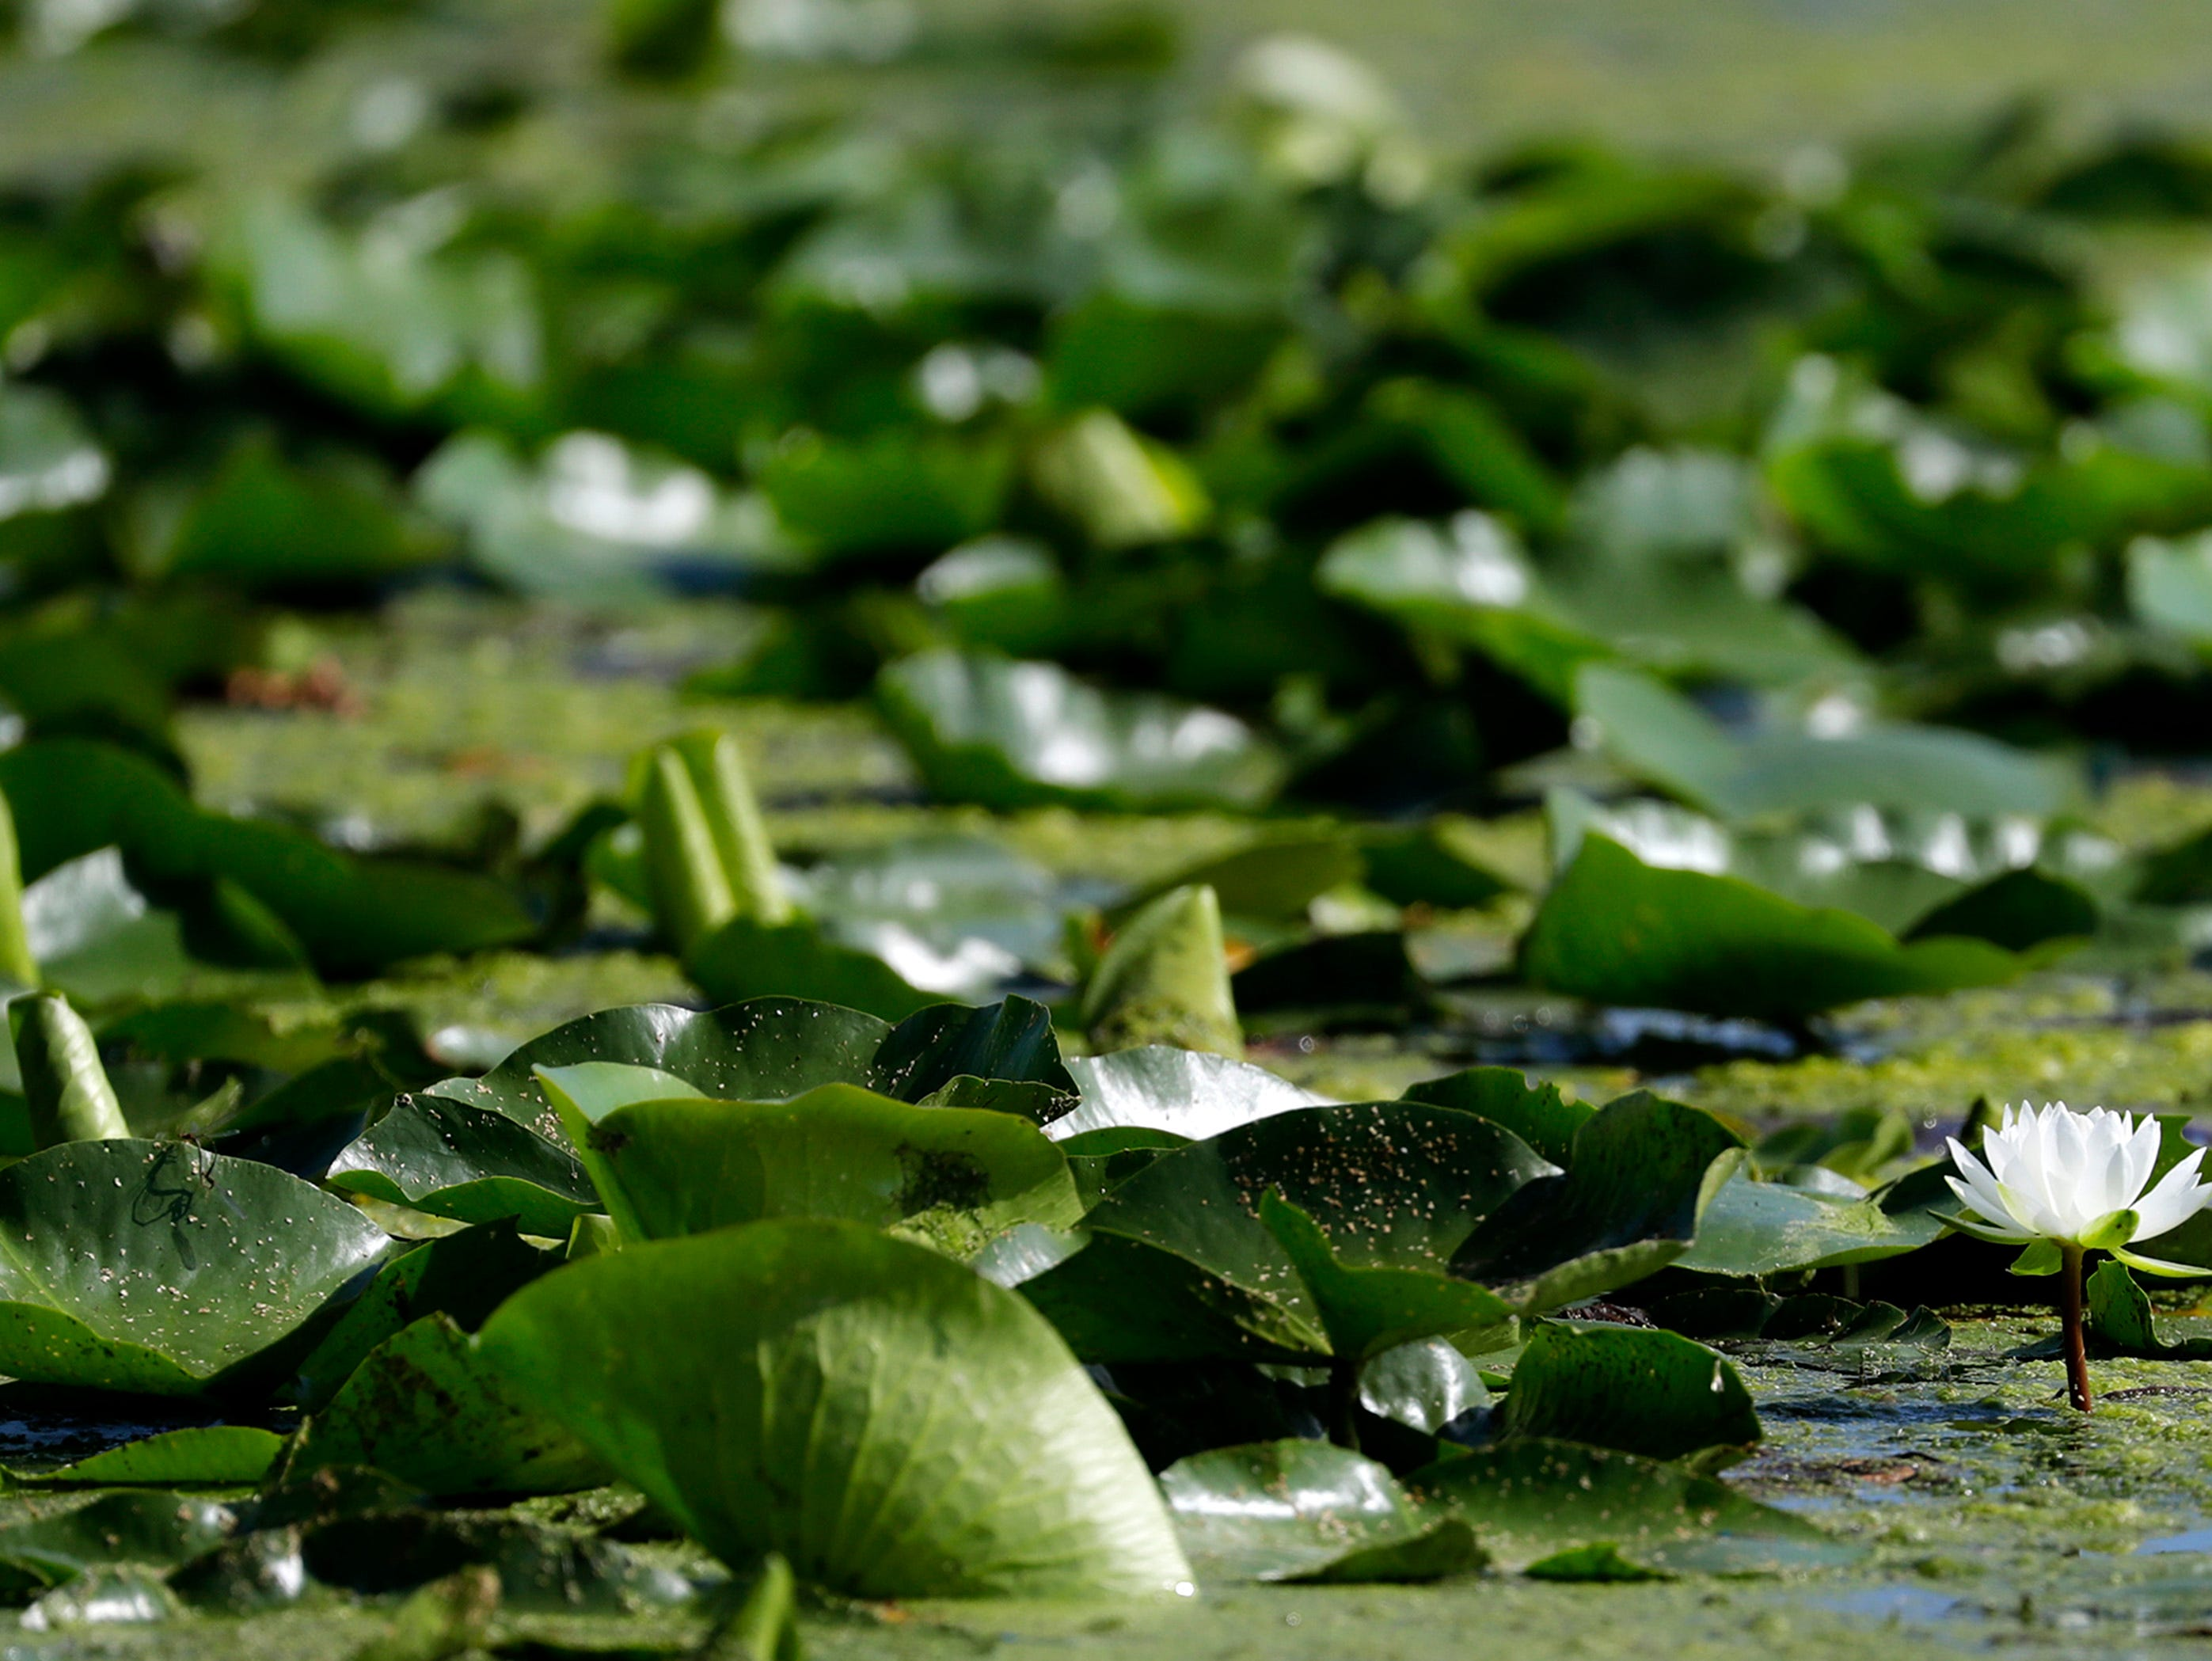 A water lily blooms among algae near the Menasha Lock Monday, July 16, 2018, in Menasha, Wis. The organizers of the annual Park-to-Park Paddle event decided to change the route to avoid the algae and weeds in the area near the lock. They will get out of the water near the Racine Street bridge and haul kayaks and canoes over the former site of Gilbert Paper.